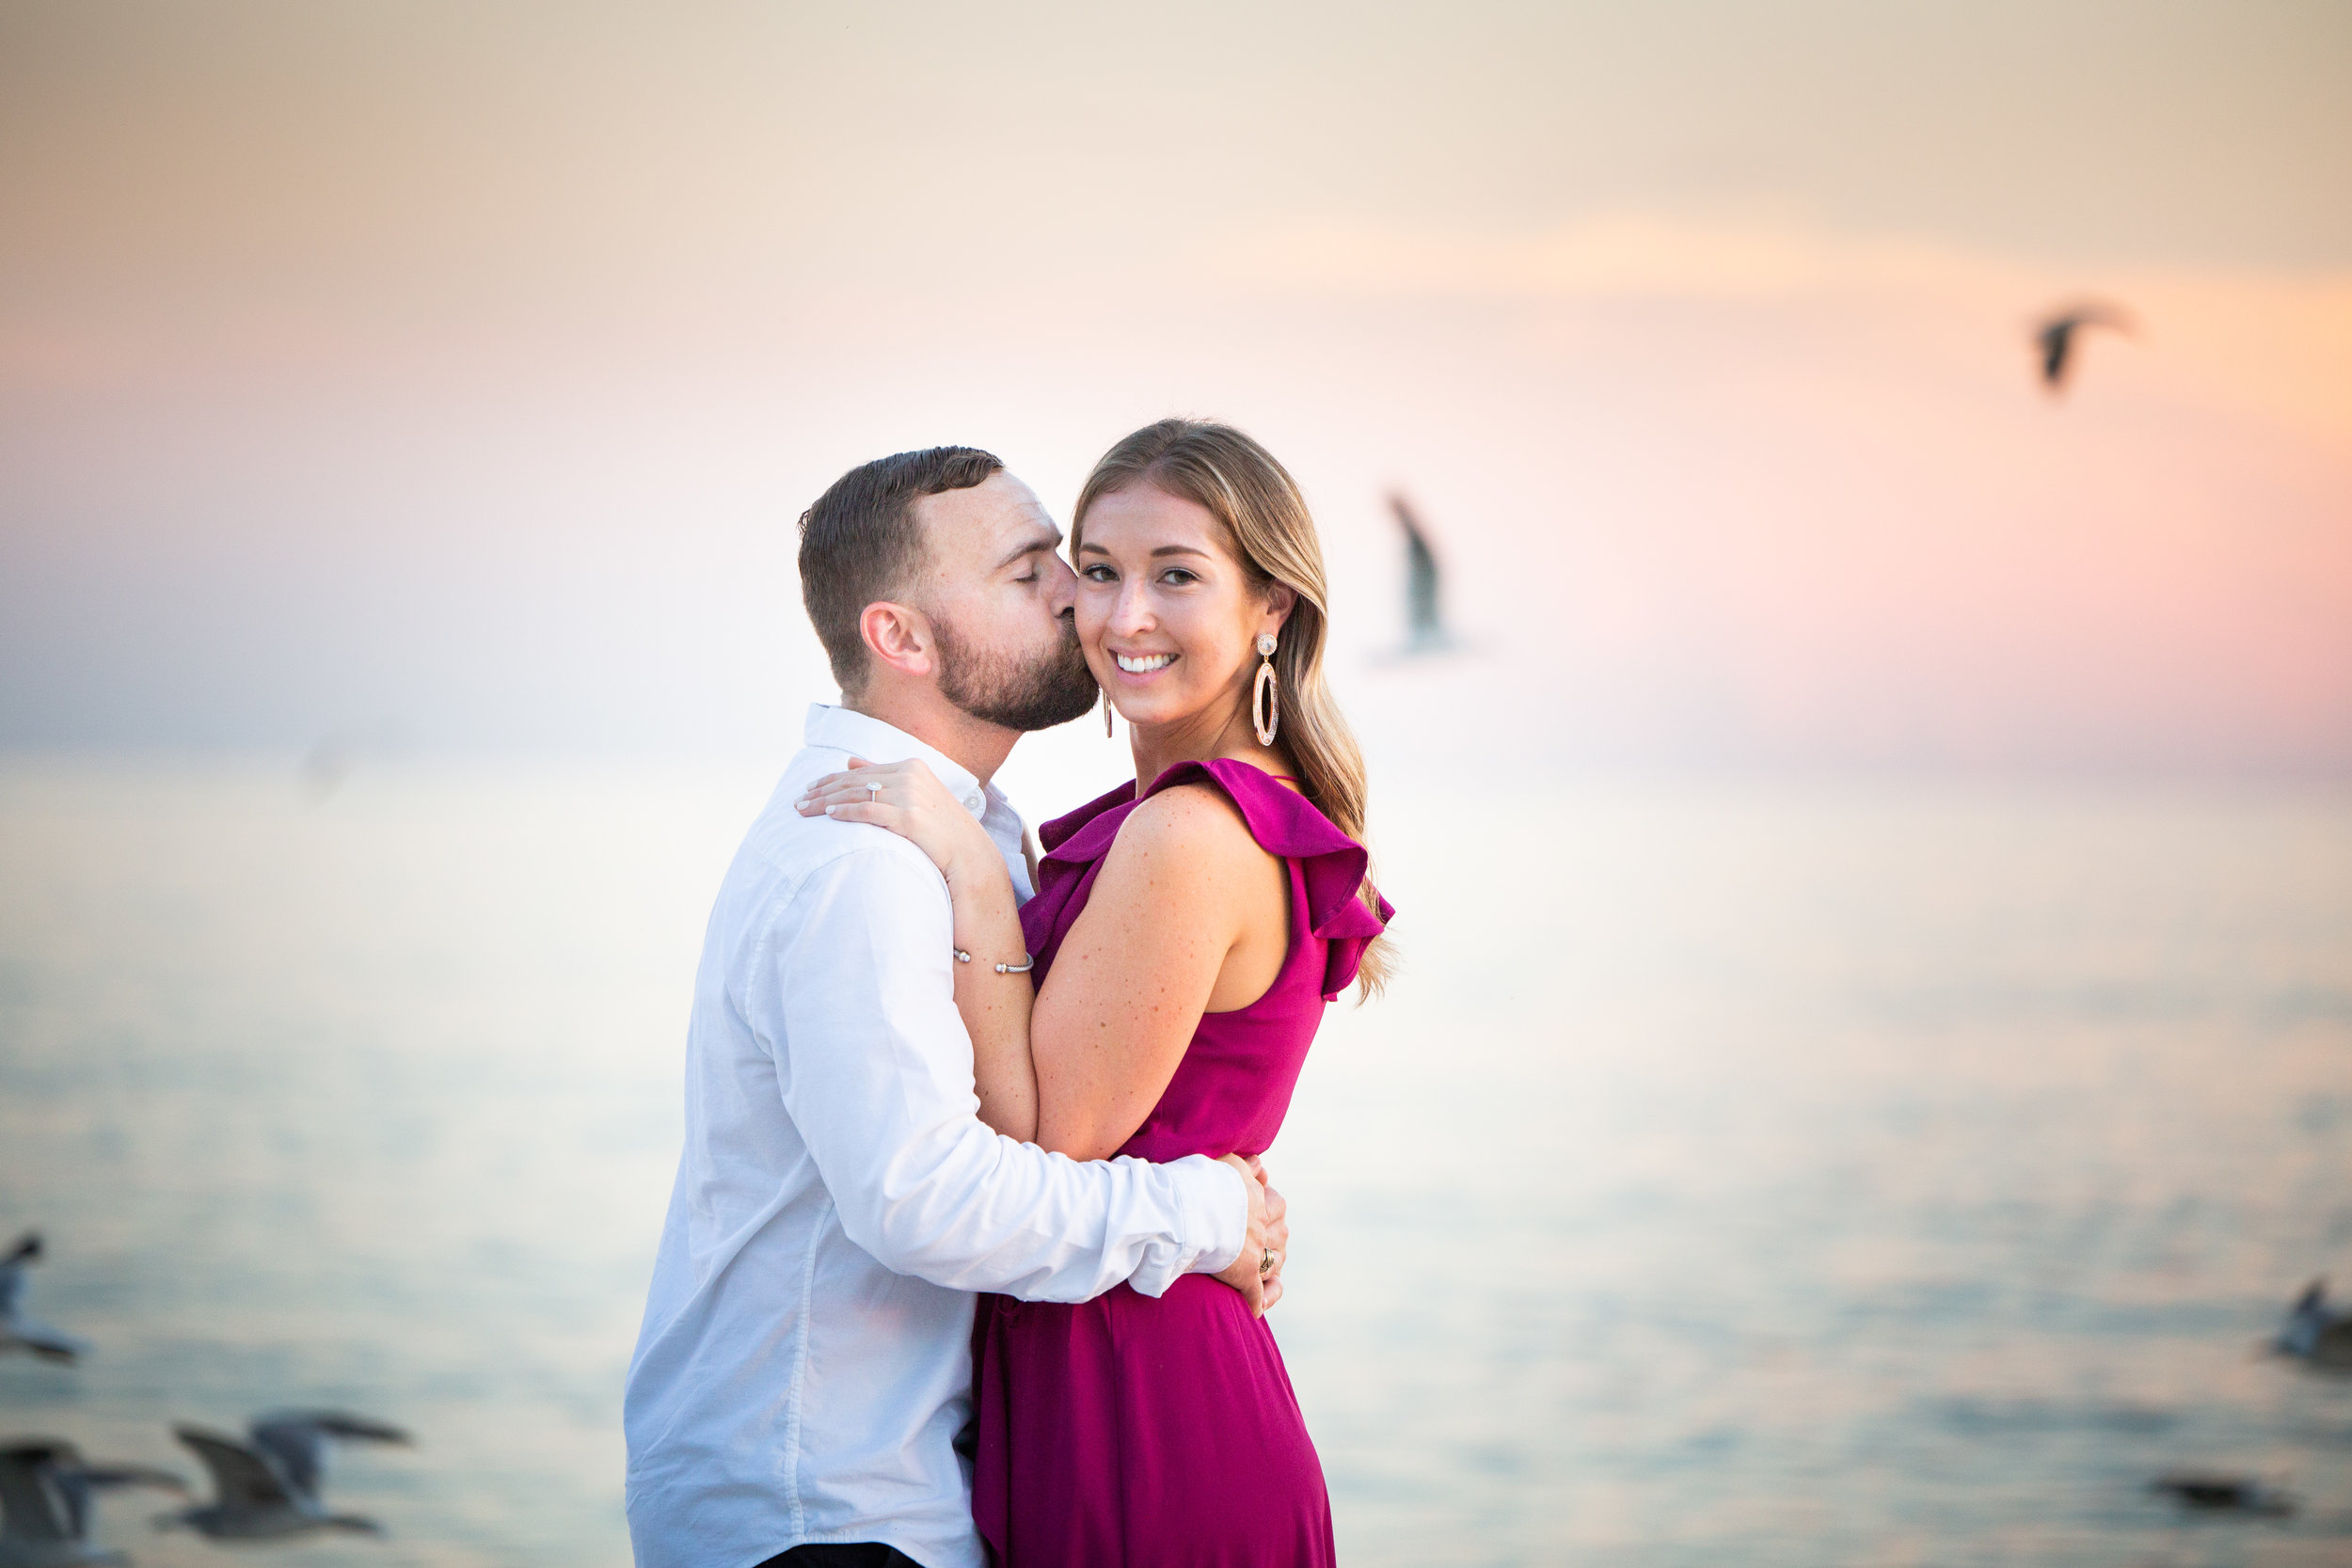 Snuggle In - there are few things more romantic than being together in paradise. enjoy this time all to yourselves with romantic engagement photos on the beach or location of your choice!